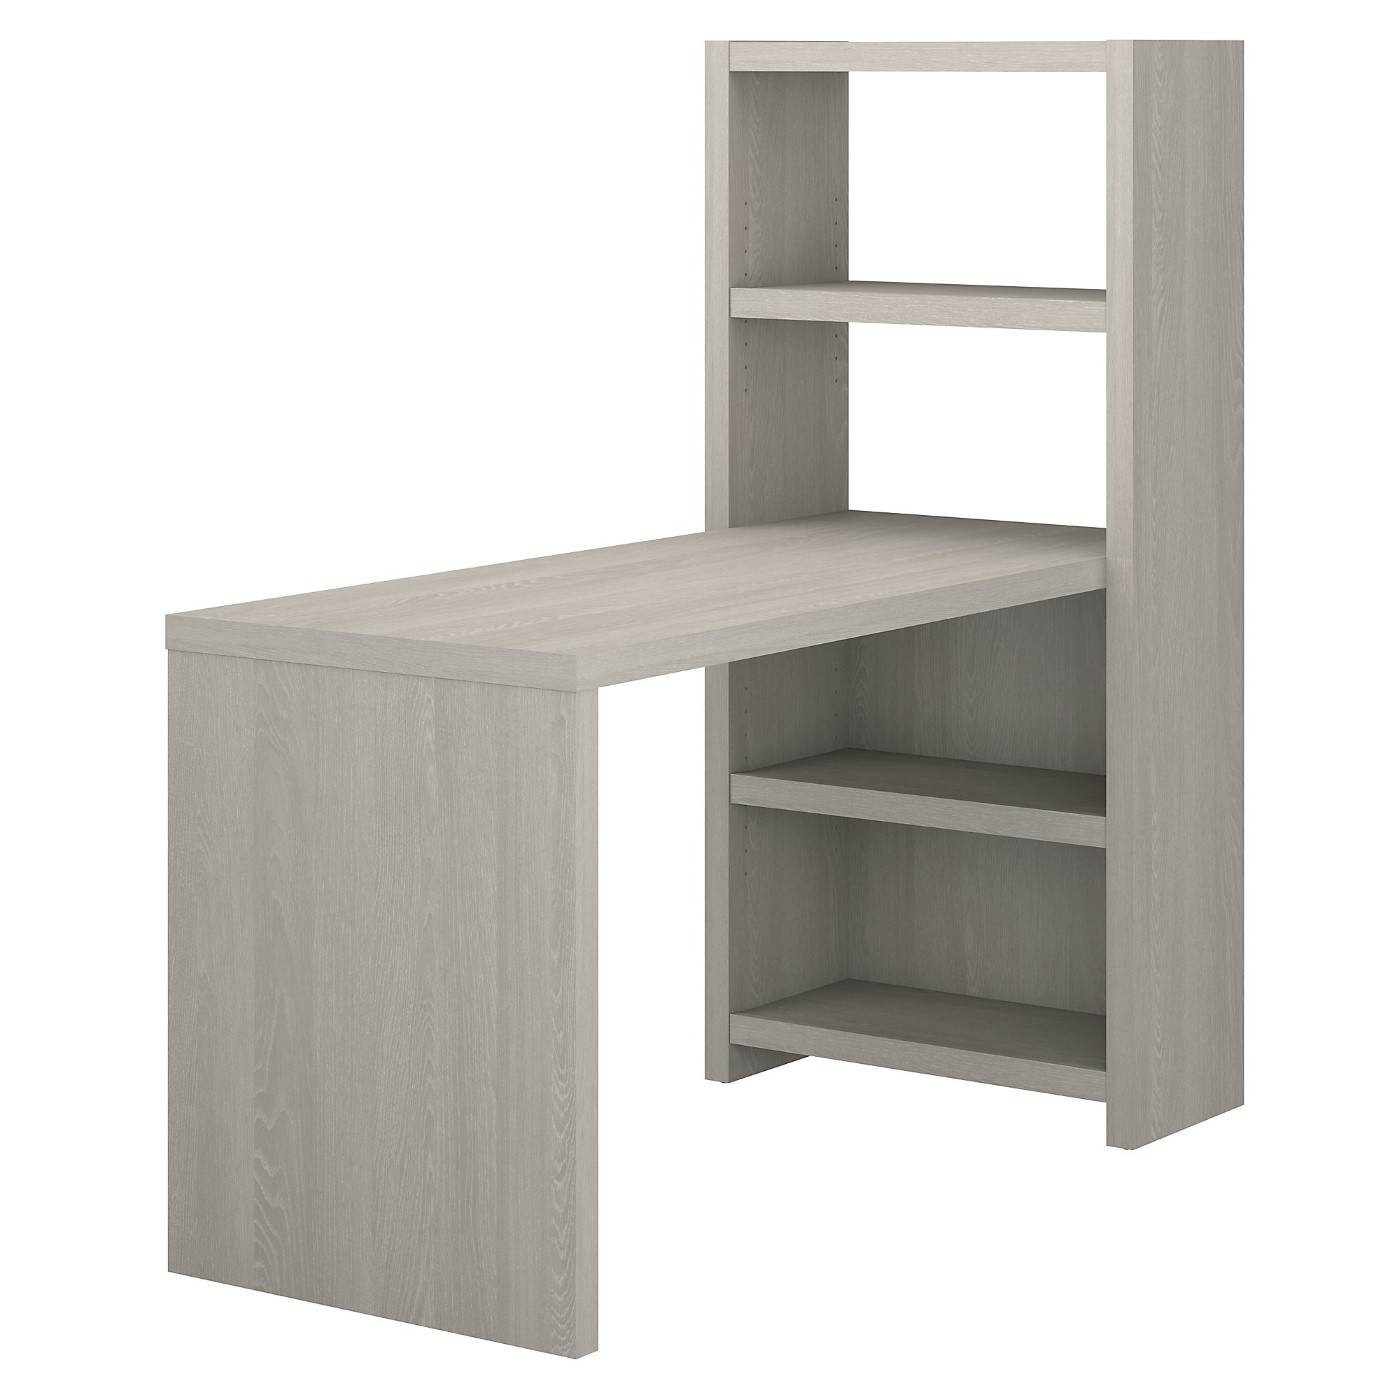 </b></font><b>The kathy ireland� Echo 56W Craft Table is Sustainable Eco Friendly Furniture. Includes Free Shipping! 30H x 72L x 72W</font>. <p>RATING:&#11088;&#11088;&#11088;&#11088;&#11088;</b></font></b>